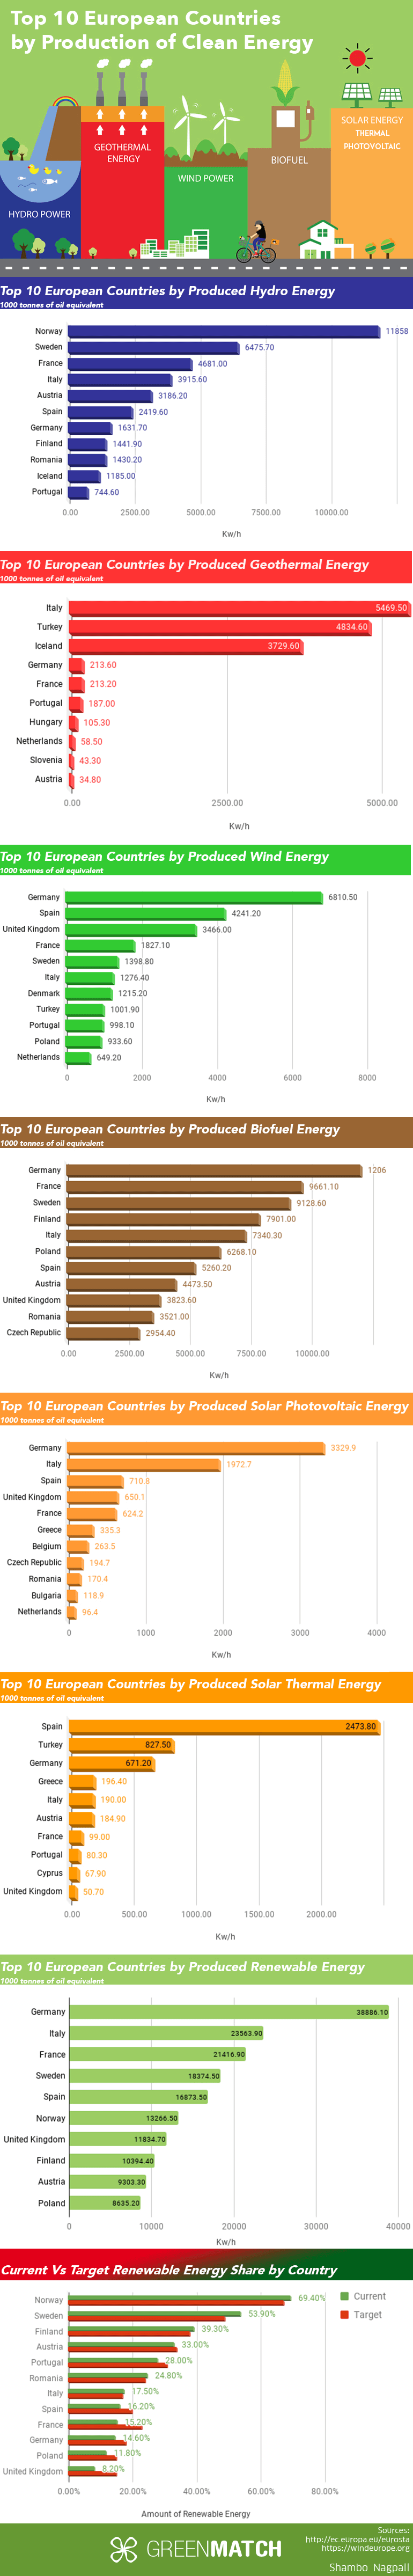 Top 10 countries by Production of Clean Energy